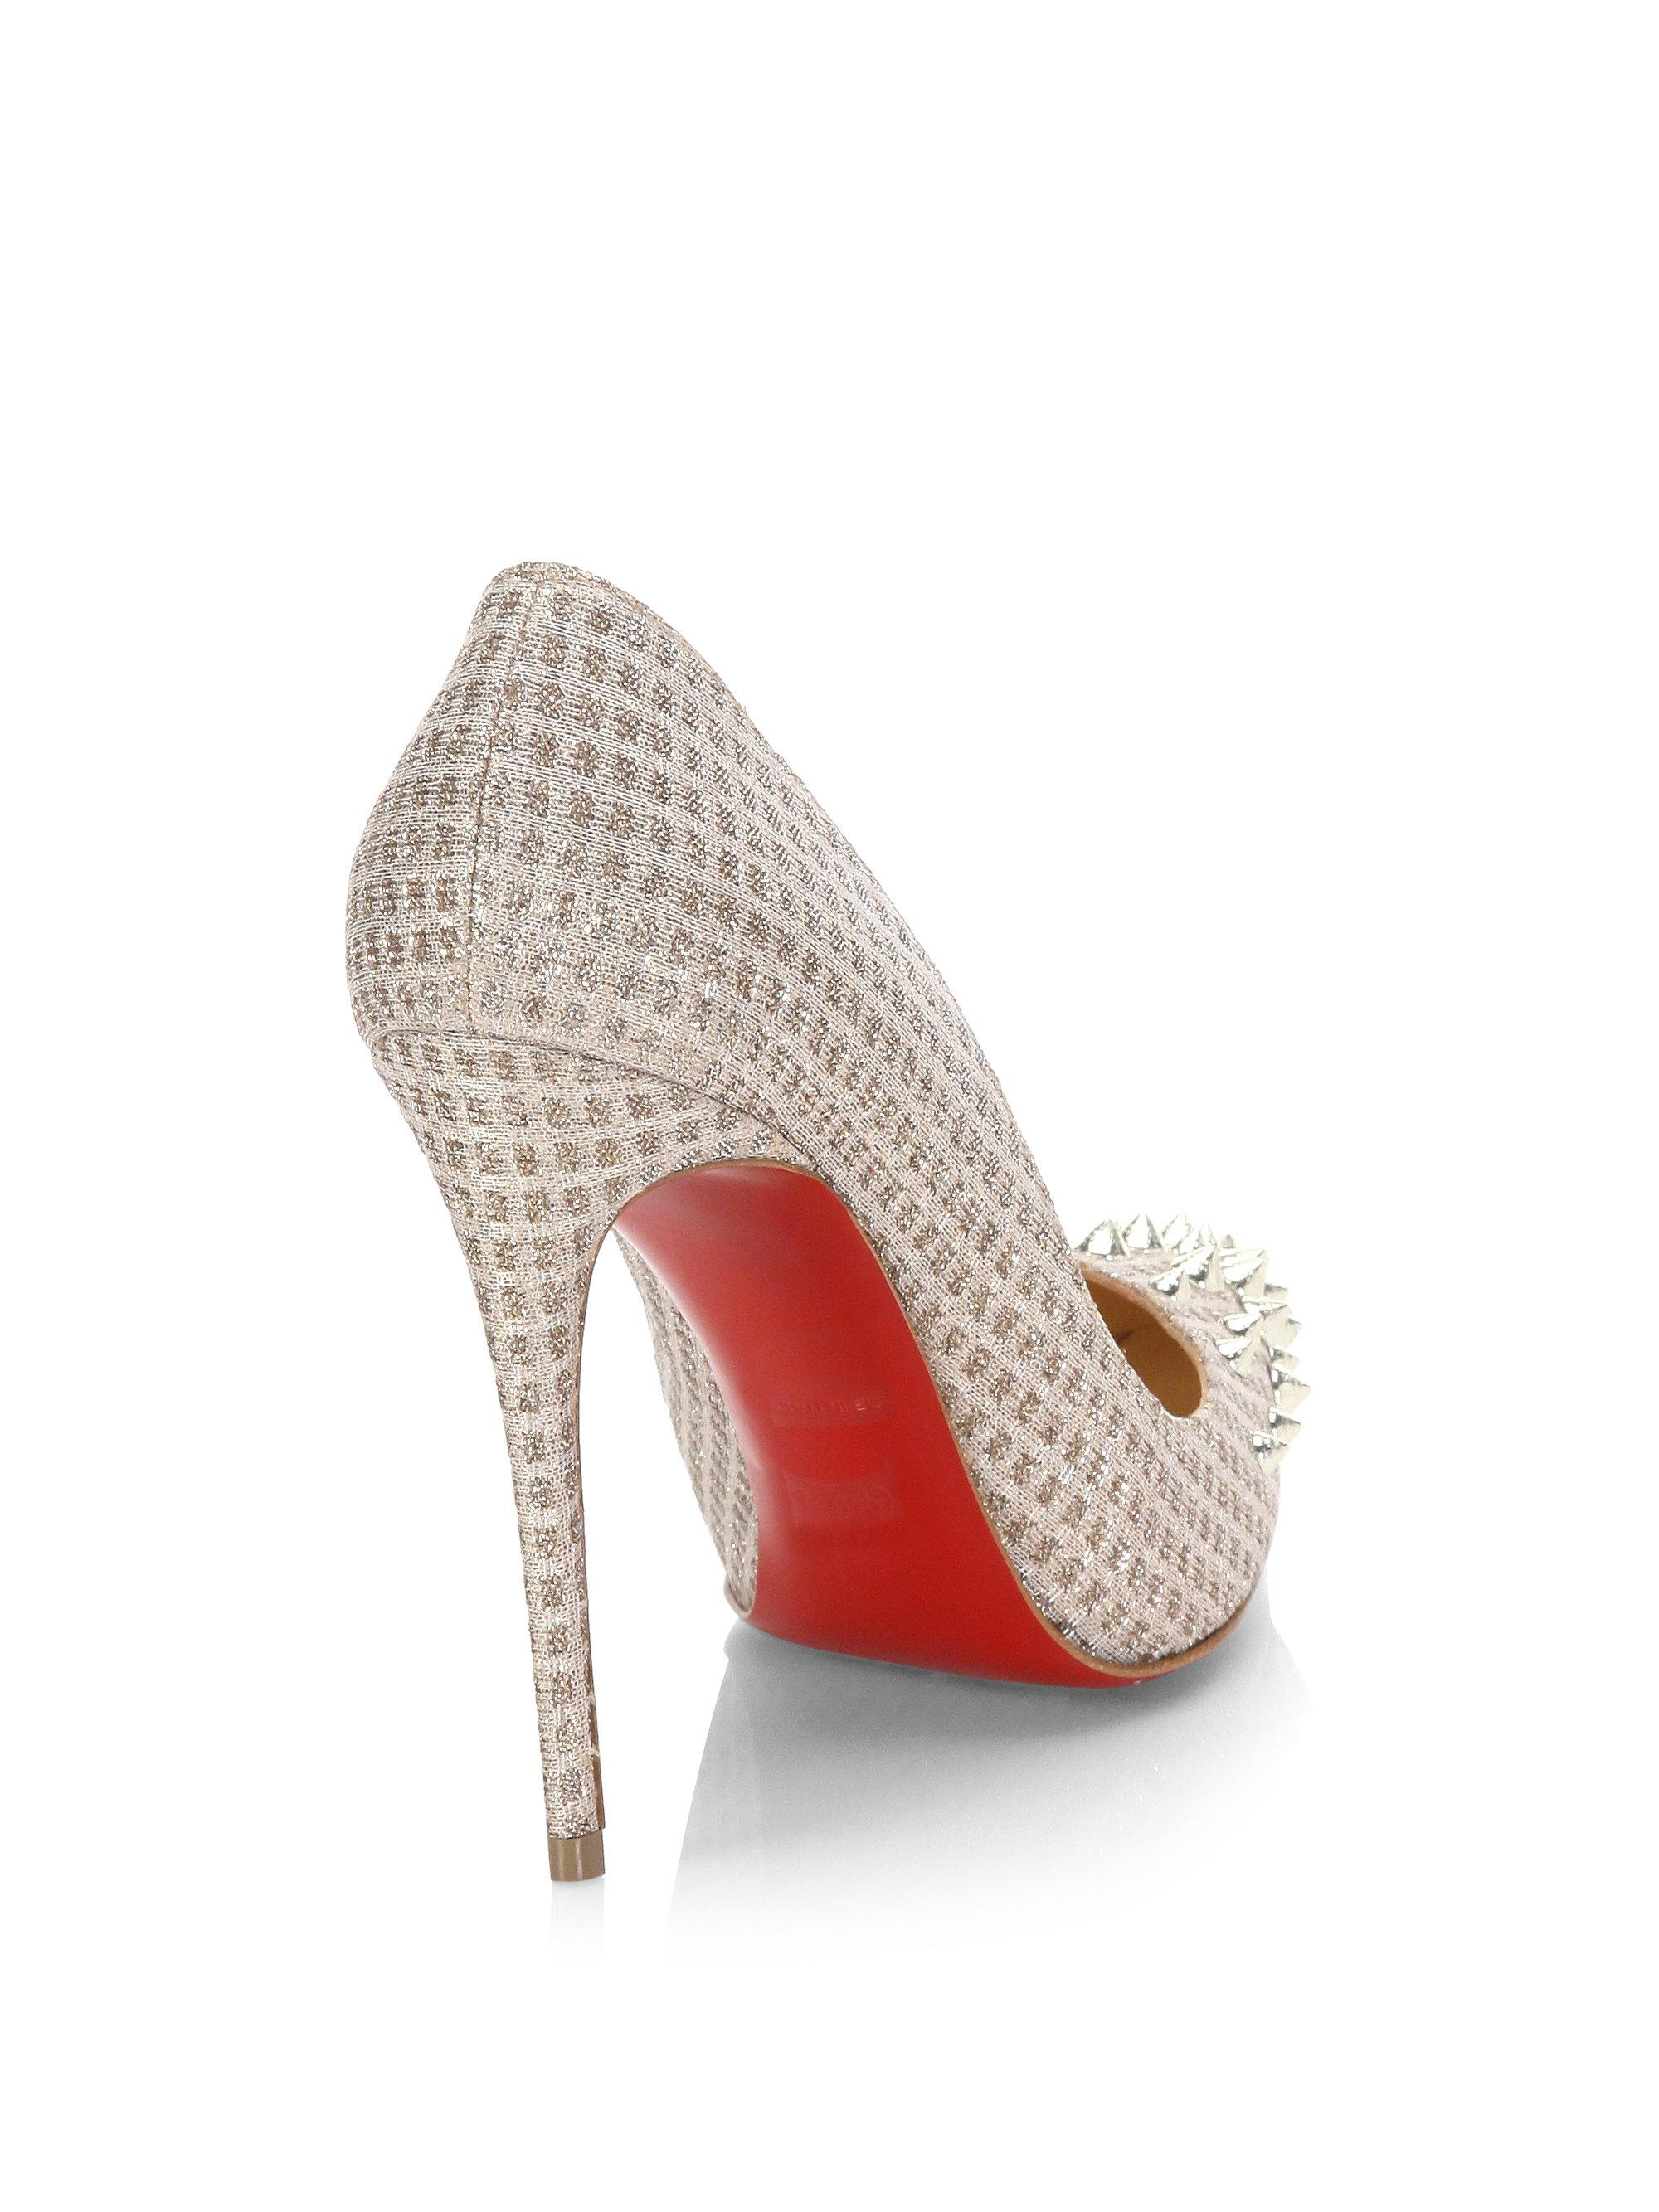 b20222ce5faf Gallery. Previously sold at  Saks Fifth Avenue · Women s Christian  Louboutin Spike ...